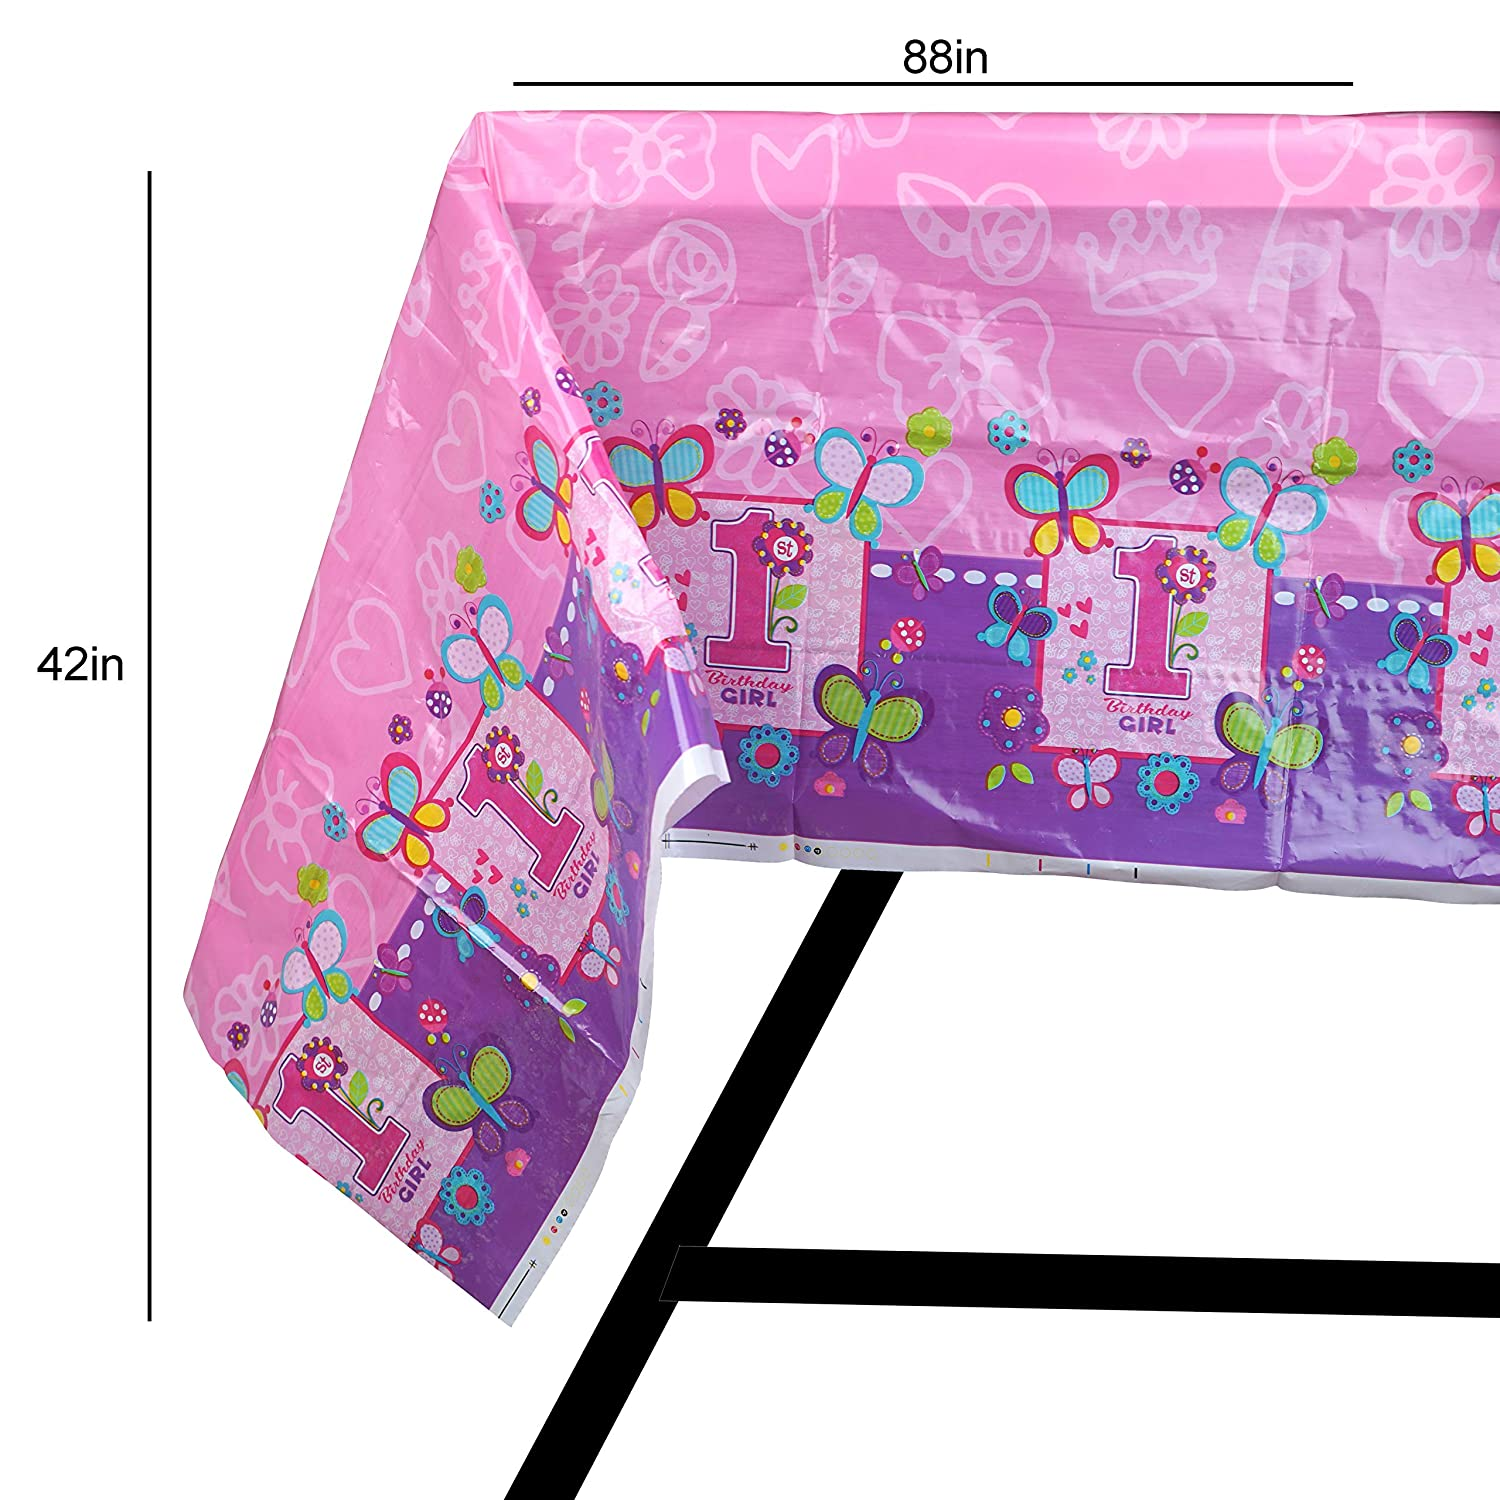 95 Piece 1 Year Old Girl Birthday Party Set Including Banner Plates Cups Napkins Tablecloth And Balloons Serves 20 Scale Rank Best Christmas Gifts 2018